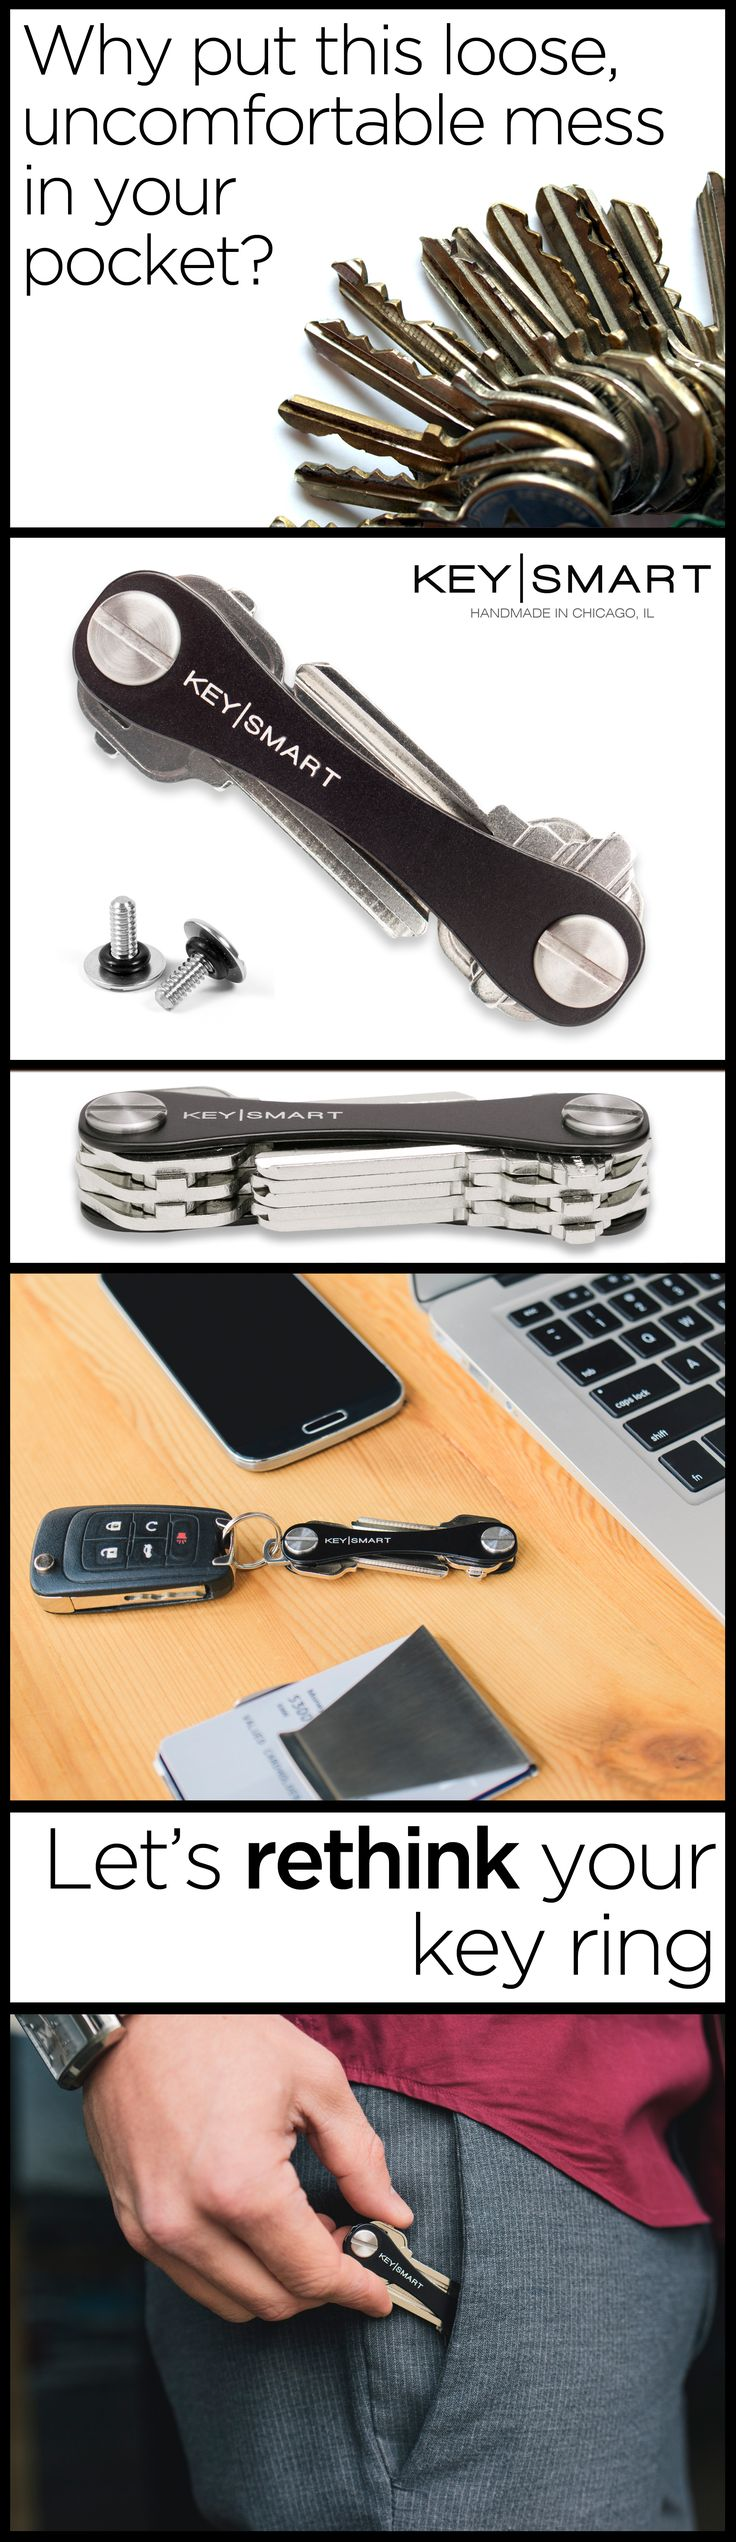 The key ring really hasn't changed much over the years, which is strange considering how often we use them. The Key|Smart finally makes organizing your keys easy and functional. This key holder is designed like a pocket knife and keeps your keys neatly together rather than loose and dangling. It holds a USB drive, bottle opener, and other devices, effectively turning your keys into a useful multi-tool. Buy one today, use discount code HOLIDAY5 by January 1, 2016 for $5 off orders over $25.